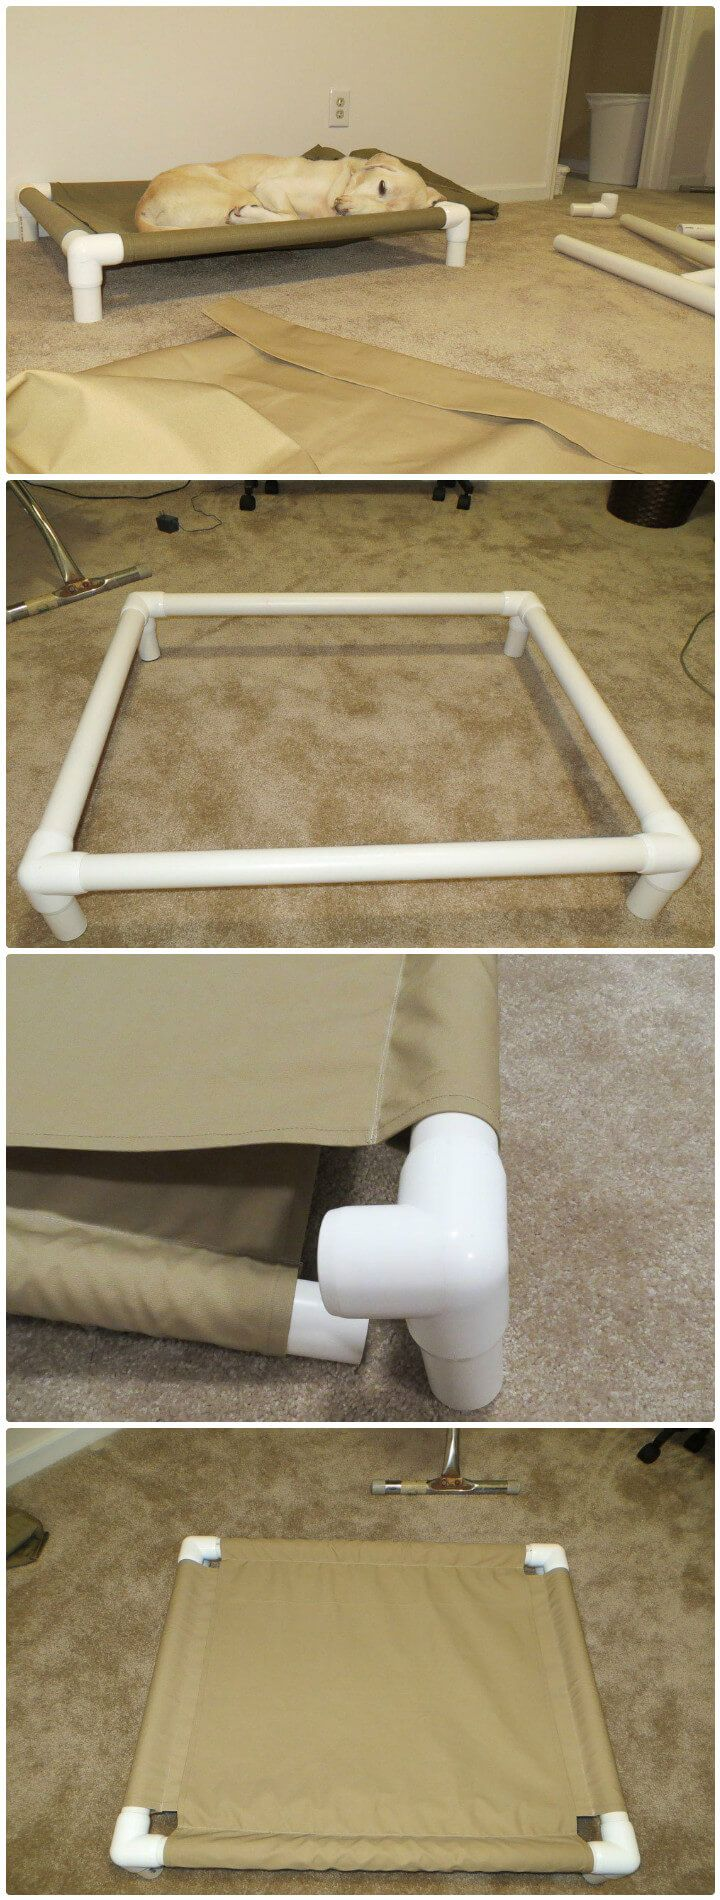 48 diy projects out of pvc pipe you should make  dog cotsdog     best 25  pvc dog bed ideas on pinterest   diy cot beds dog cots      rh   pinterest